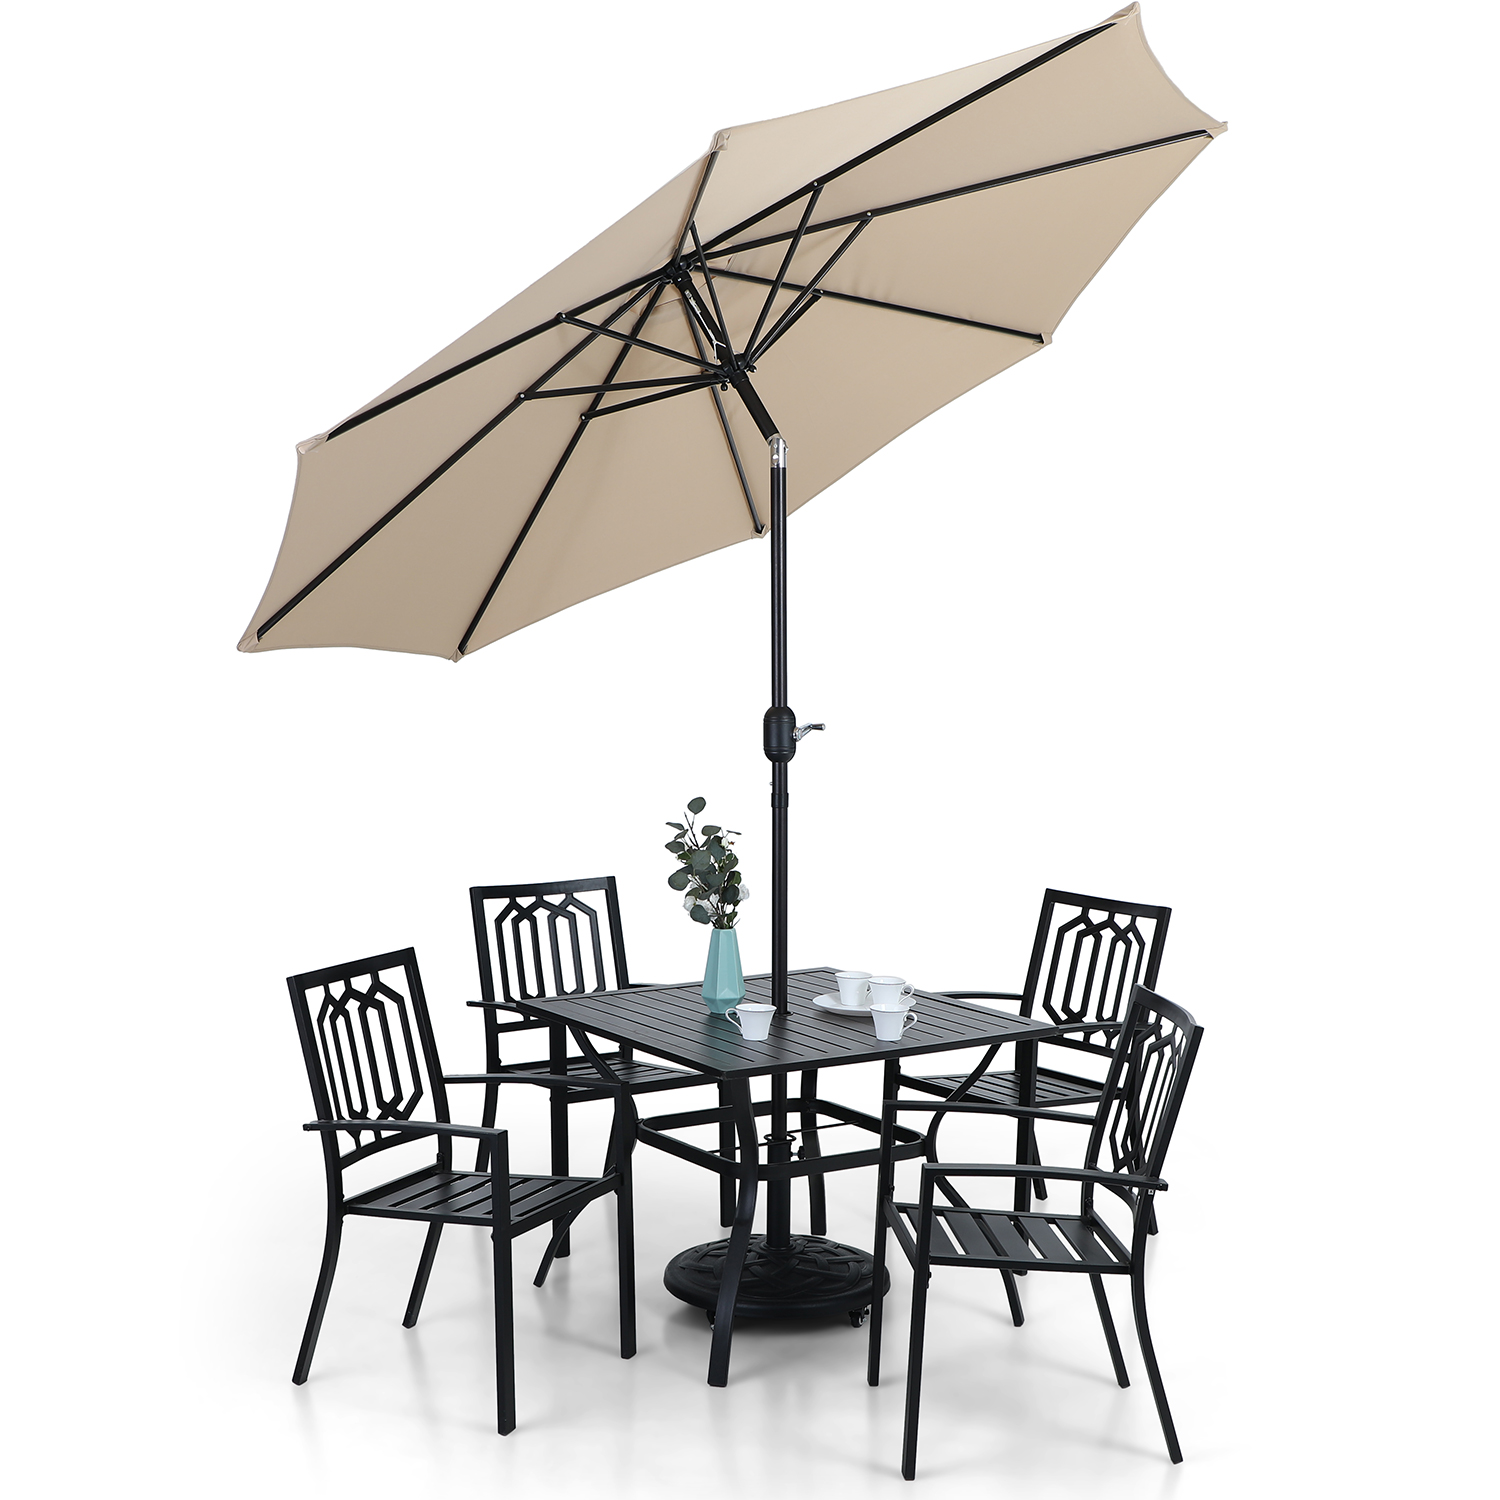 MF Studio 9ft Patio Umbrella with 8 Sturdy Ribs with Push Button Tilt